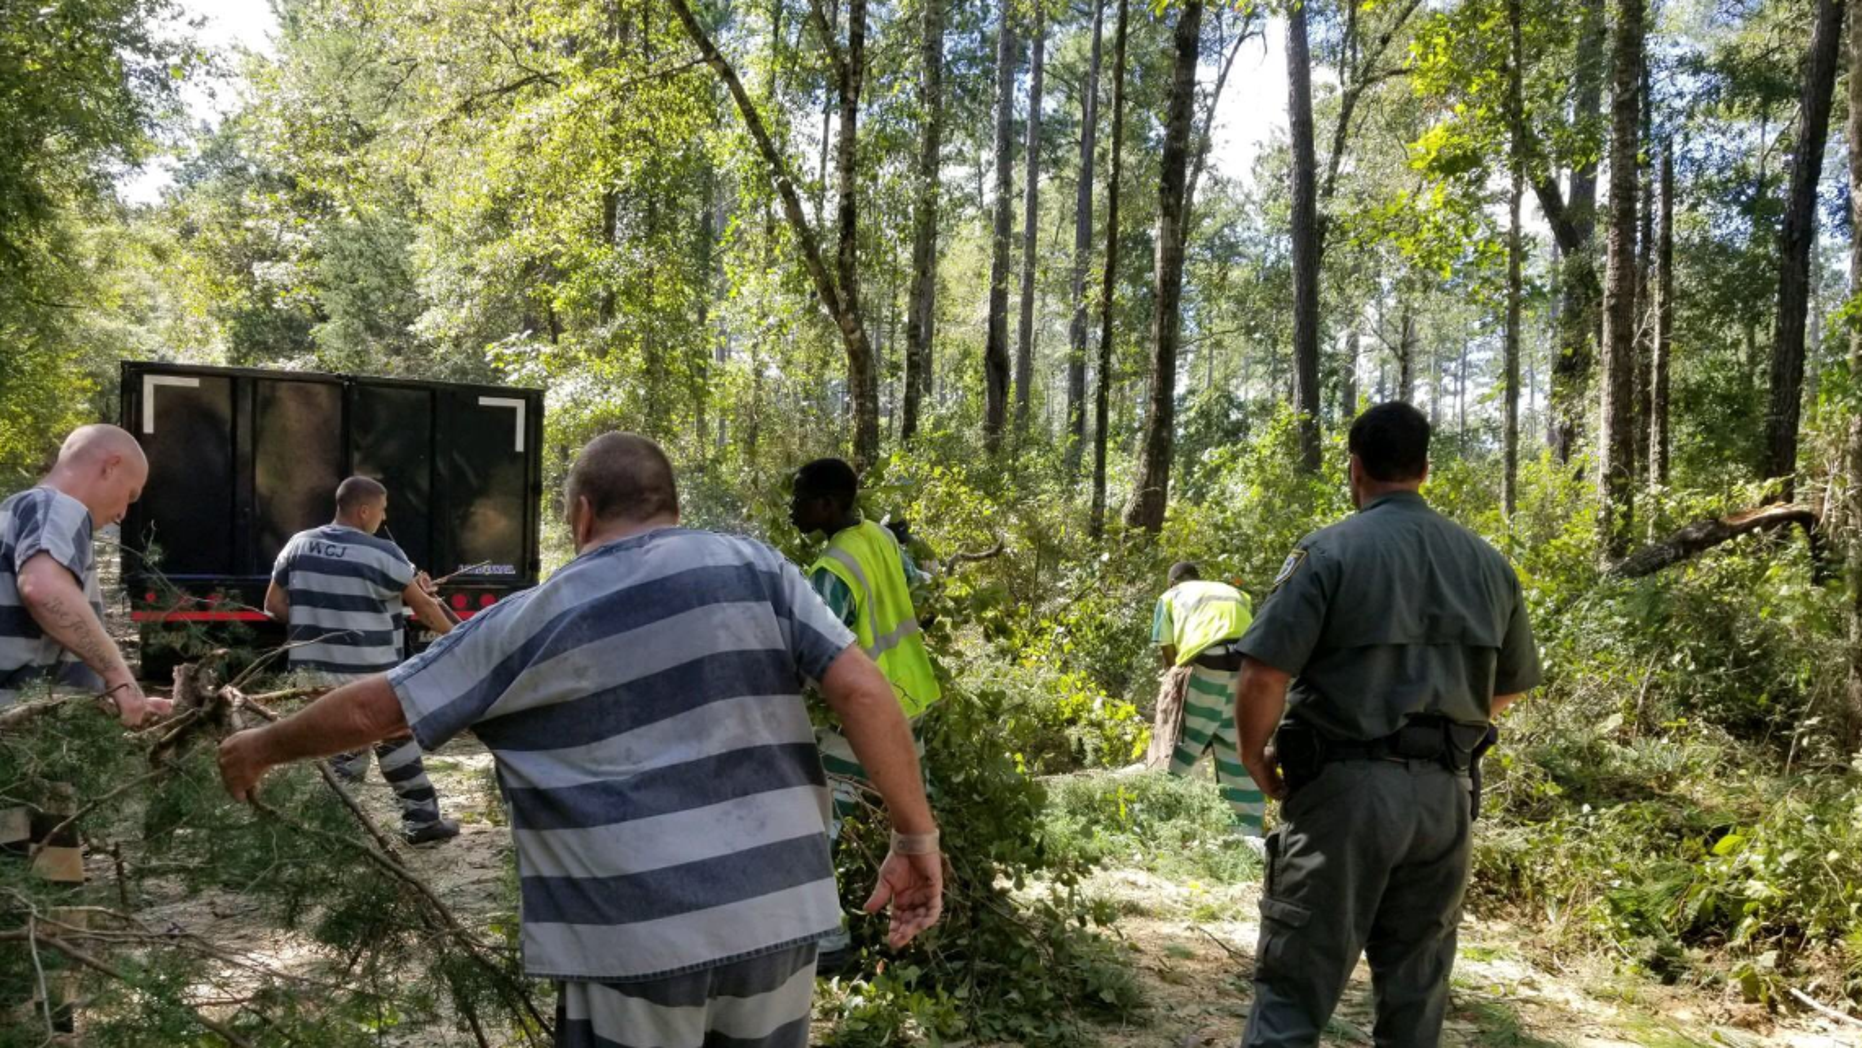 Inmates in Walton County, Florida, volunteered Thursday to help clear debris Hurricane Michael left in the Euchee Valley.